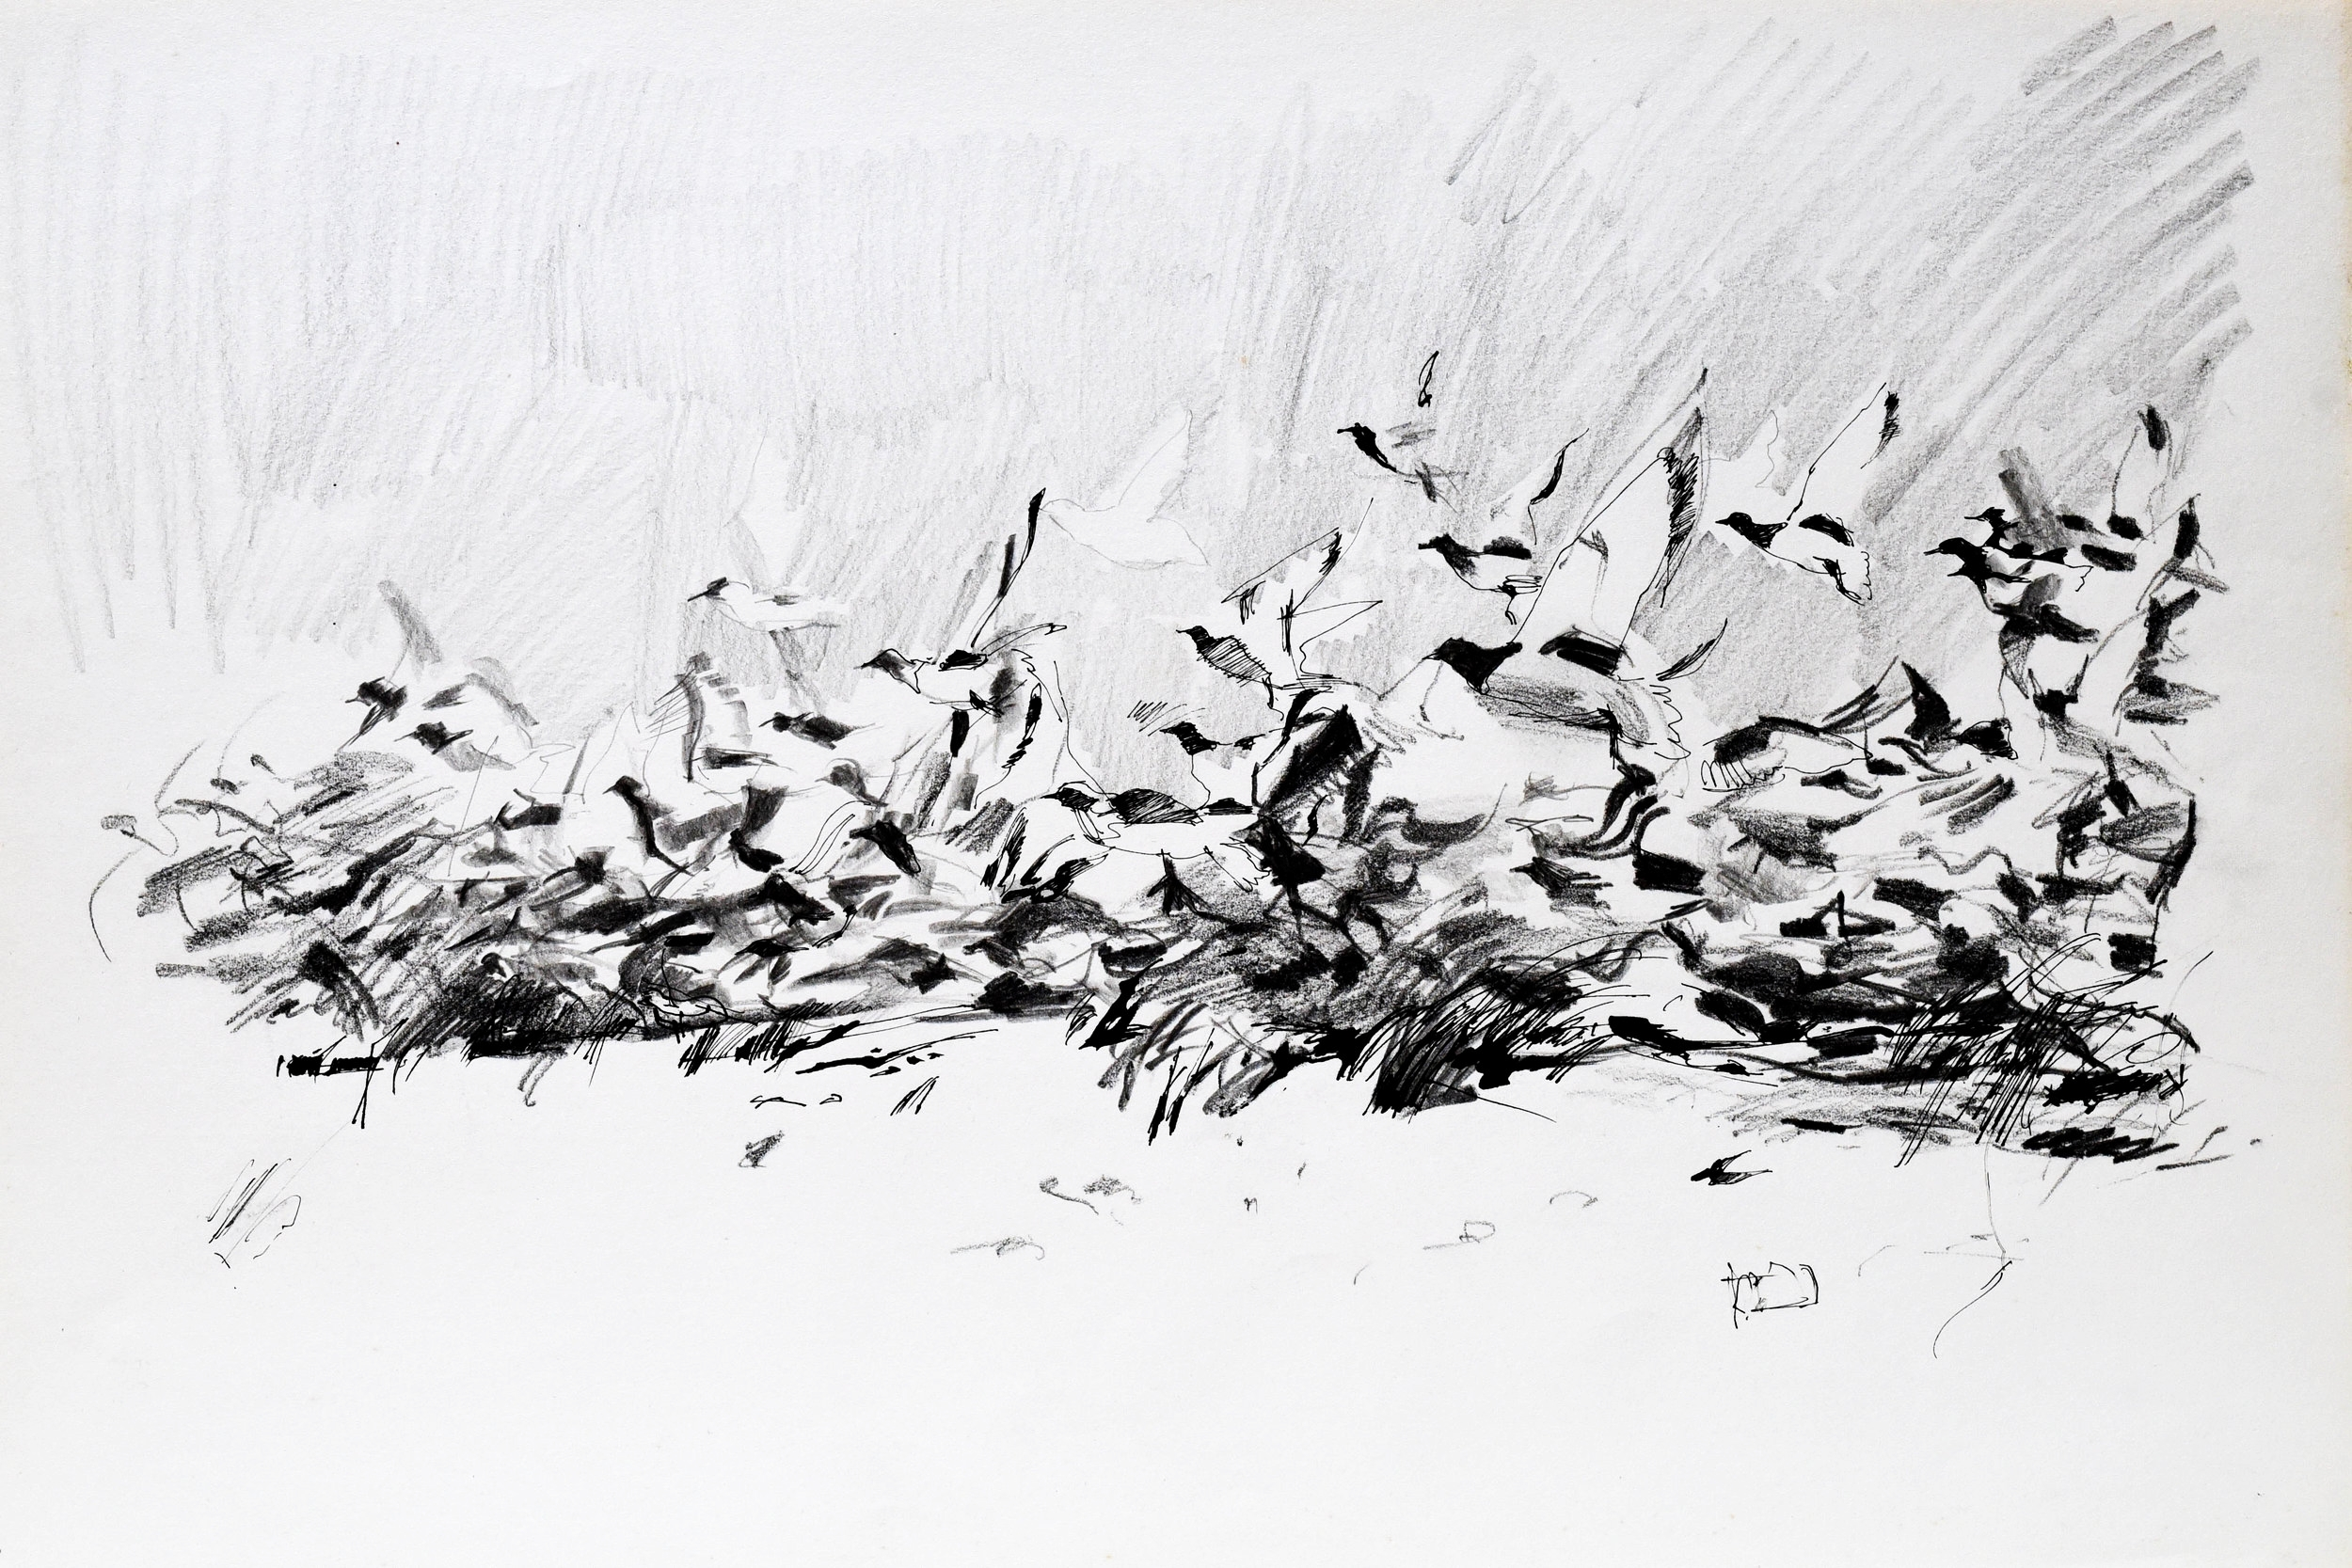 Drawing of birds taking off in pencil and charcoal on art paper